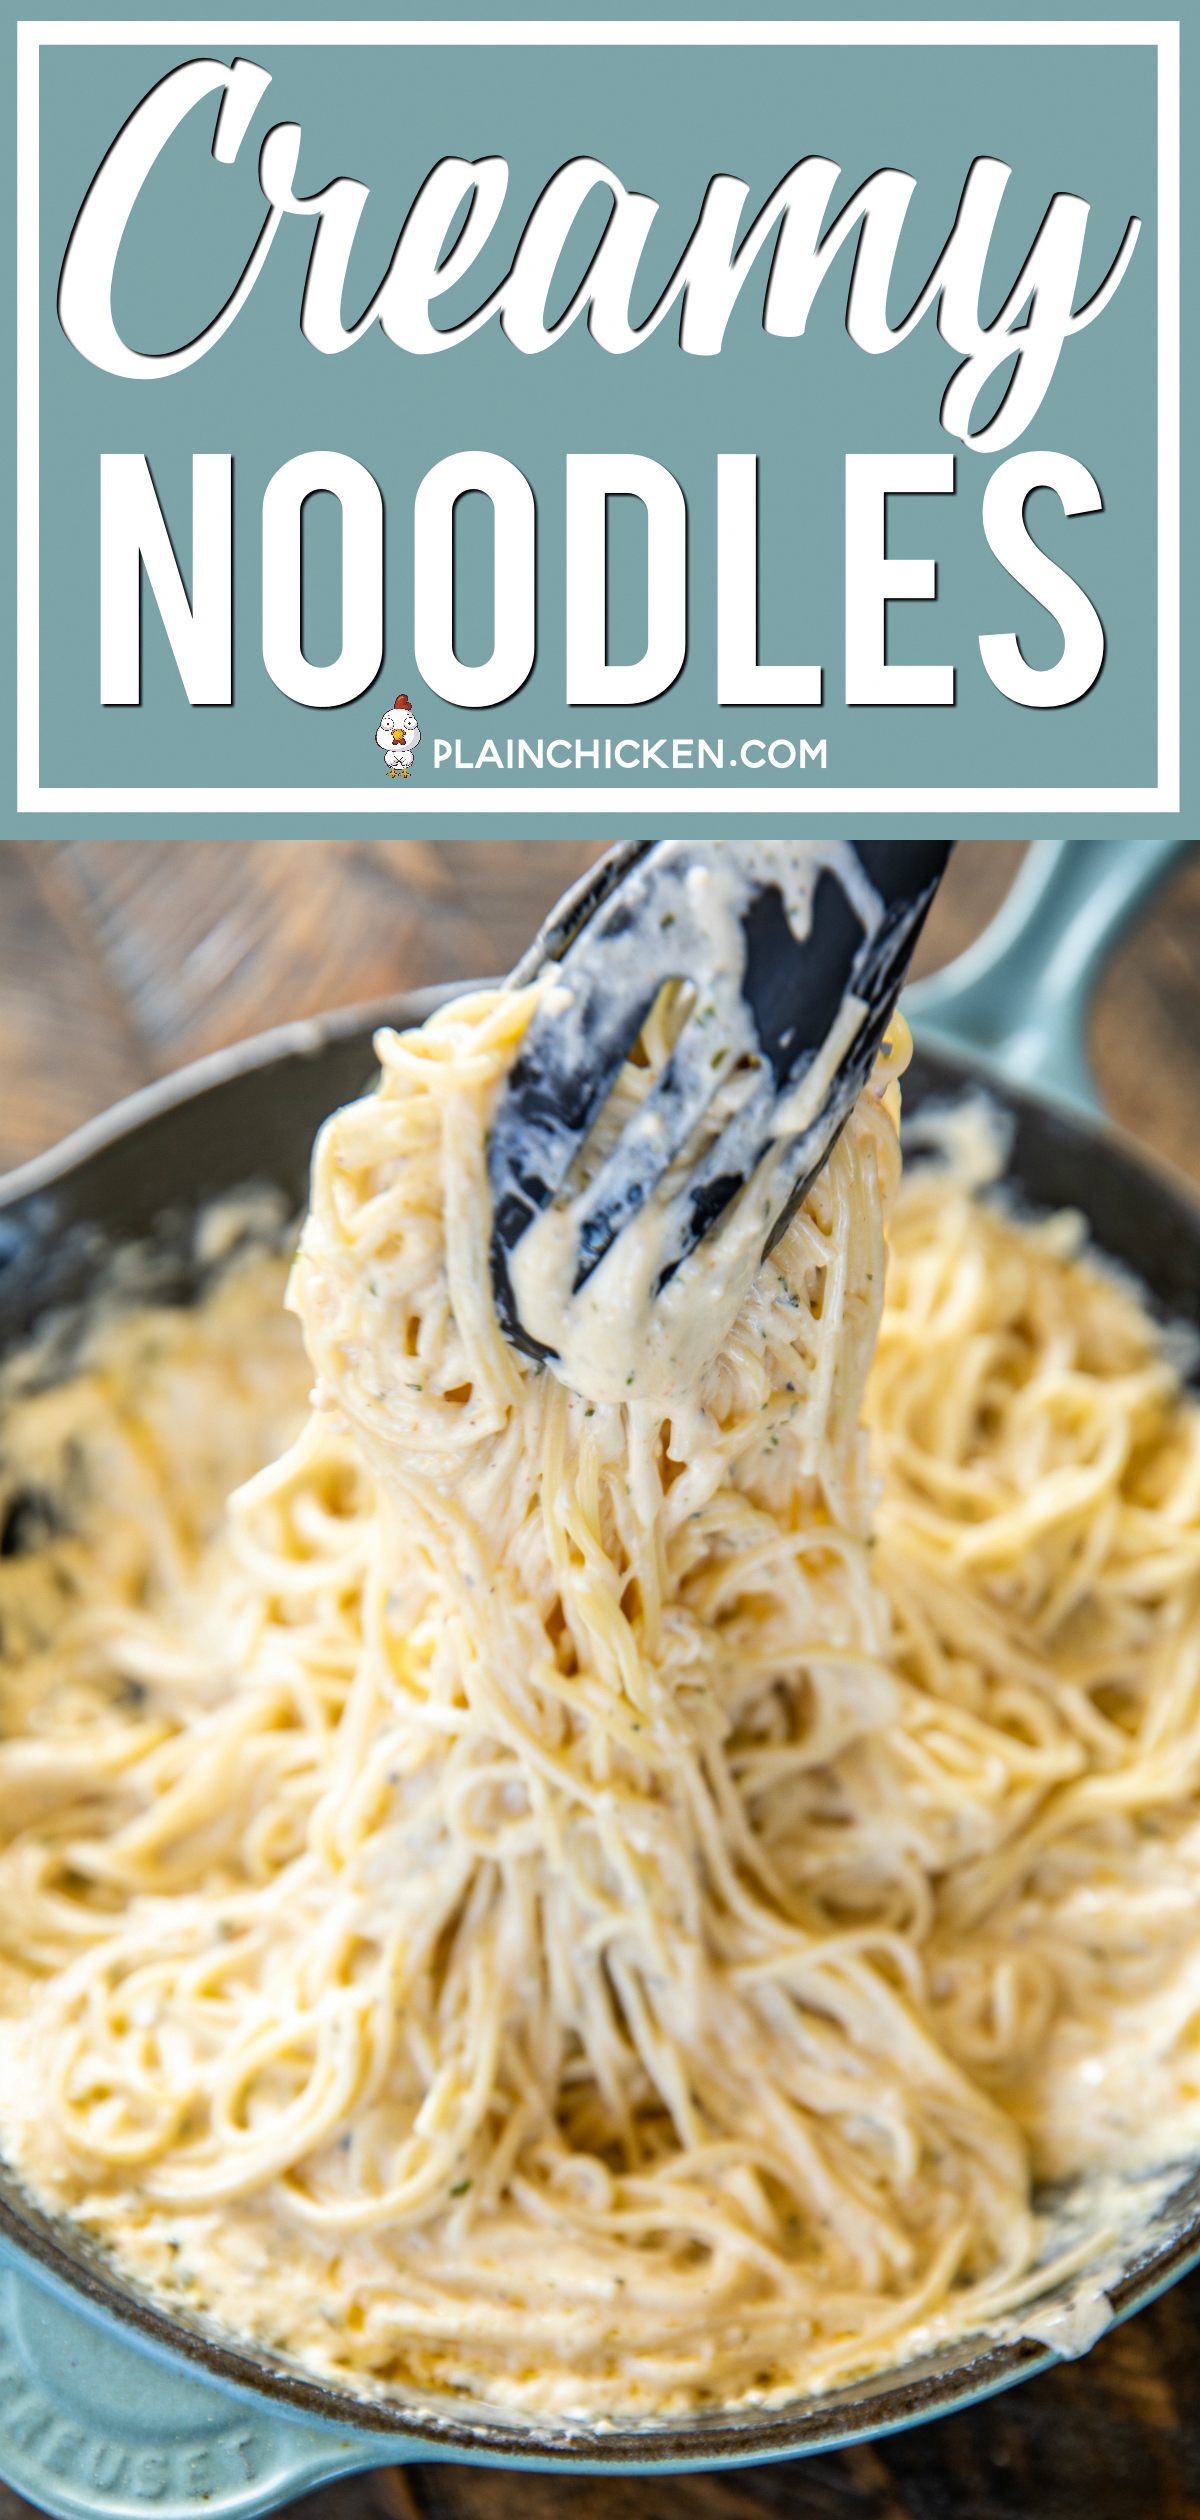 Creamy Noodles - a quick and easy side dish! Ready to eat in about 15 minutes! Spaghetti, cream cheese, milk, parmesan, garlic, butter, cajun seasoning, onion, and parsley. Goes with everything! Steak, chicken, pork. Great side dish or meatless main dish!